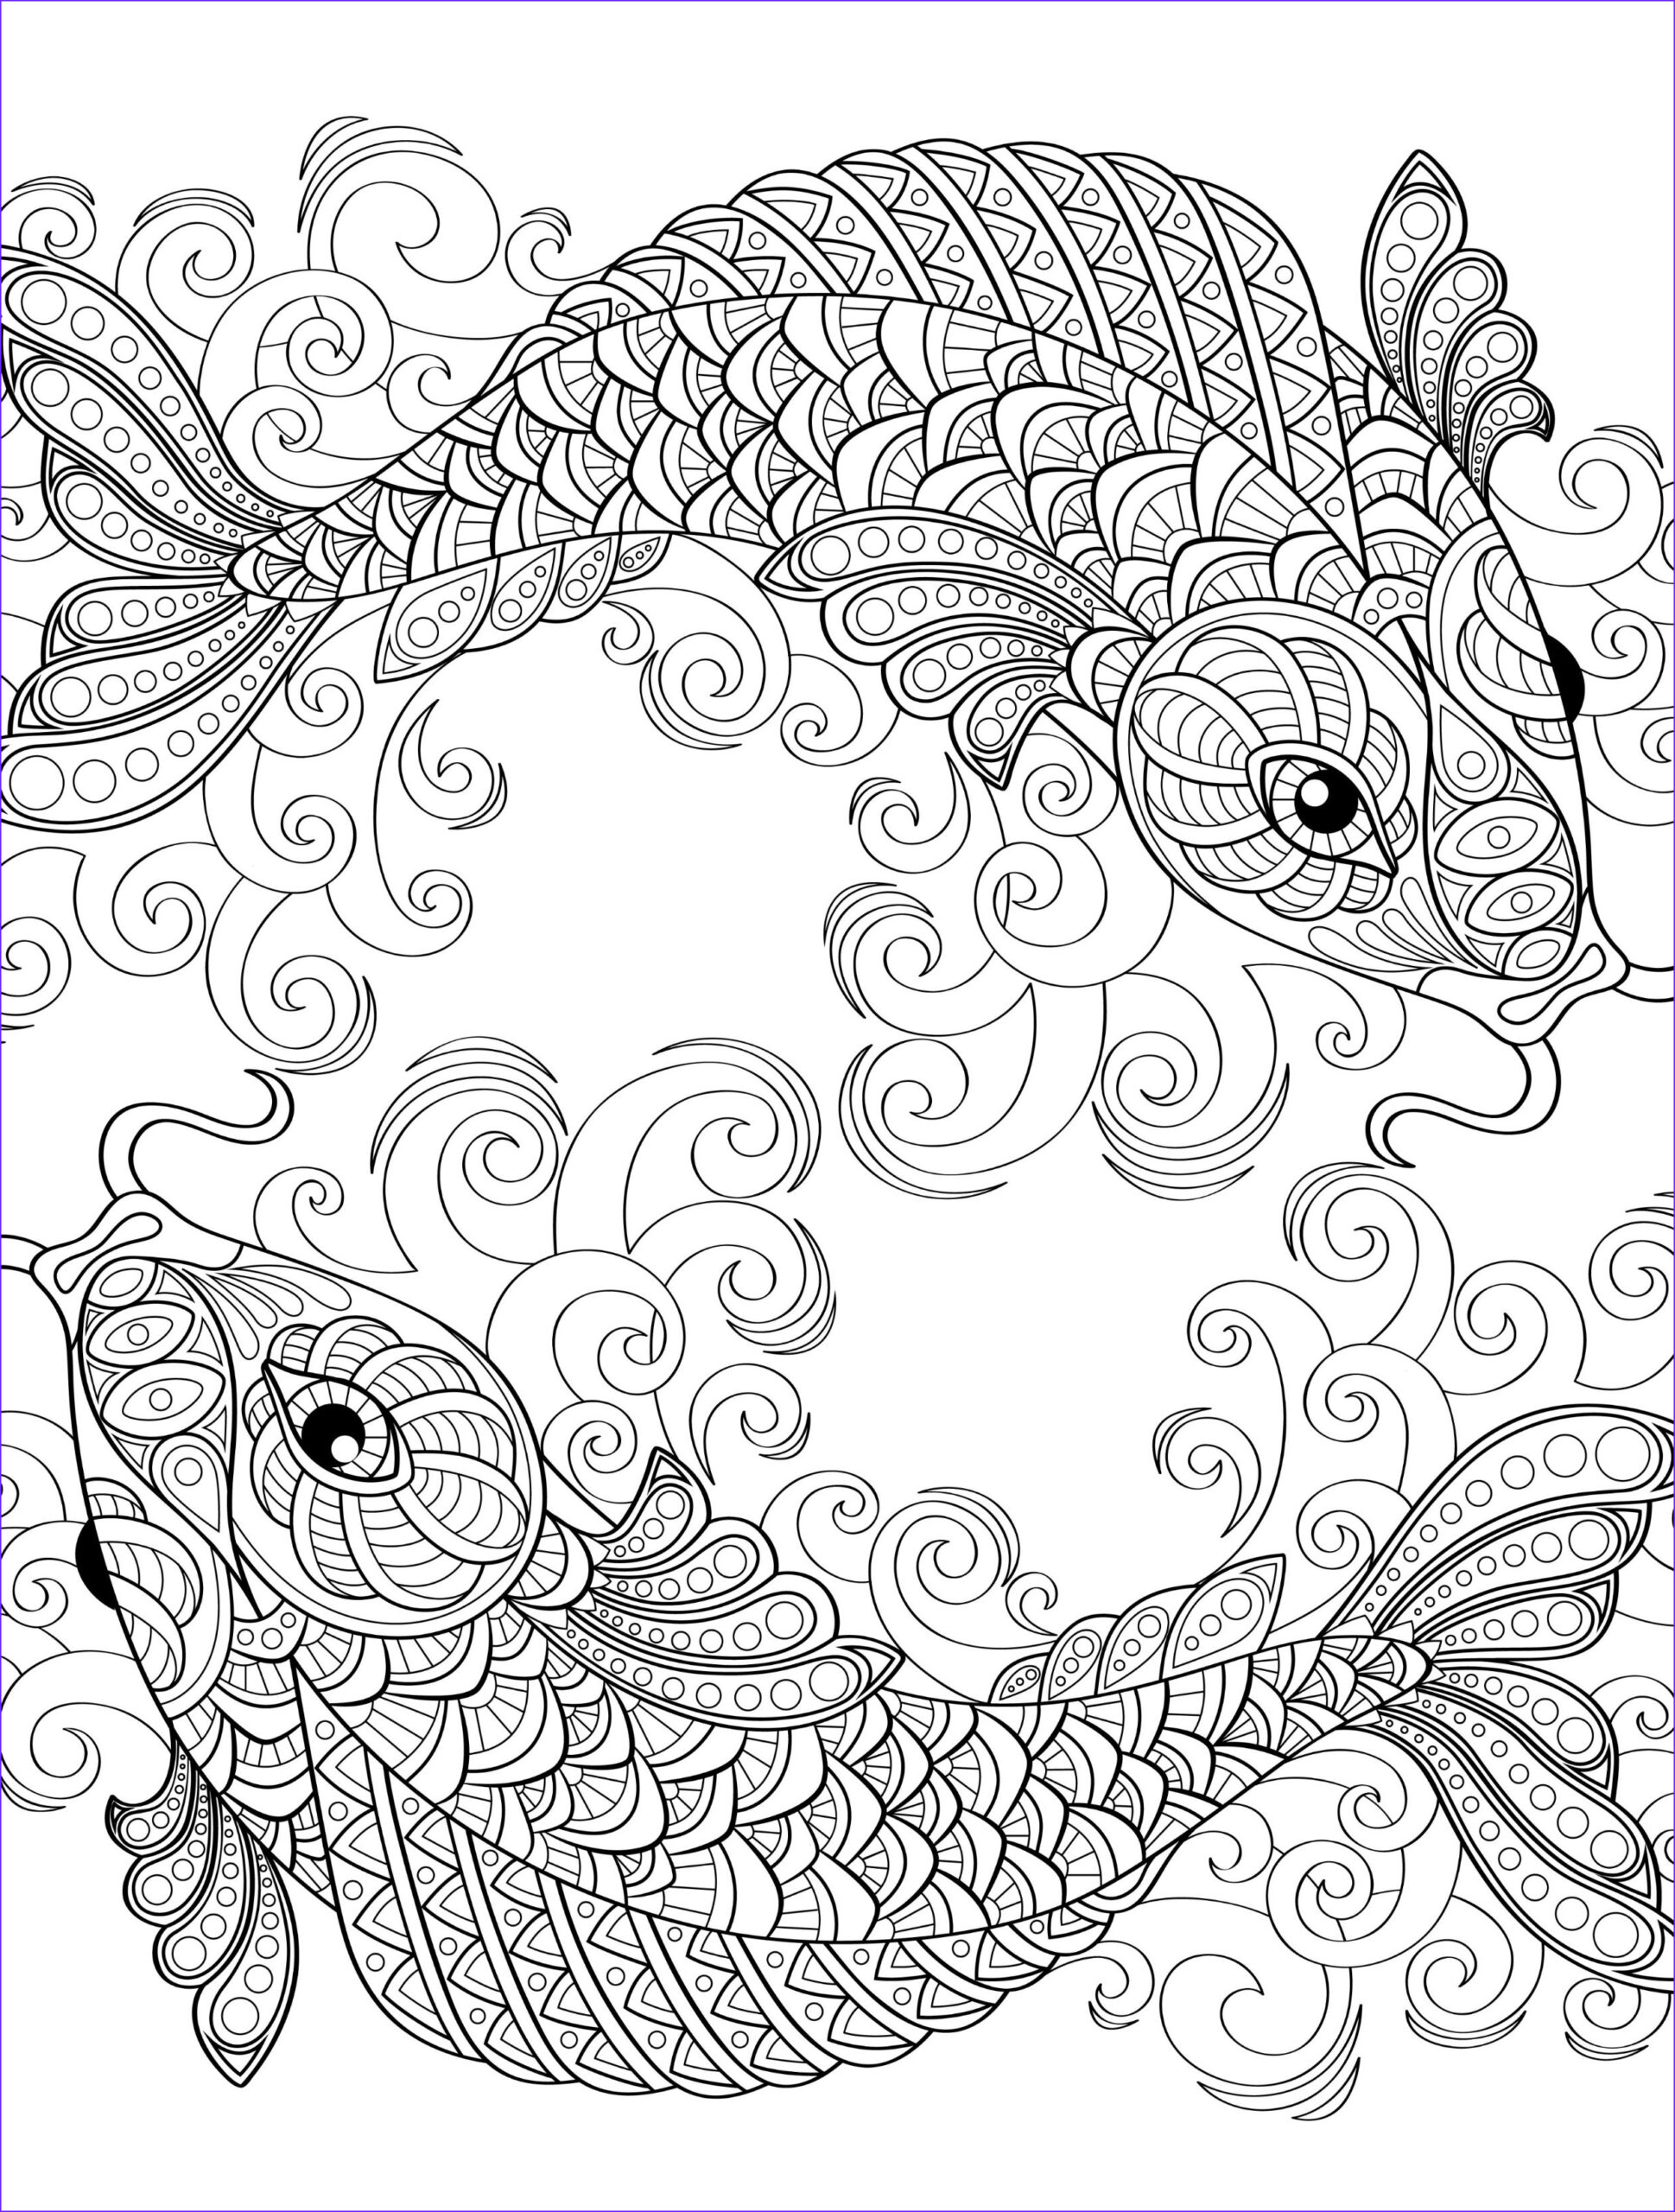 Coloring Pages Adult Elegant Image Pin On Coloring